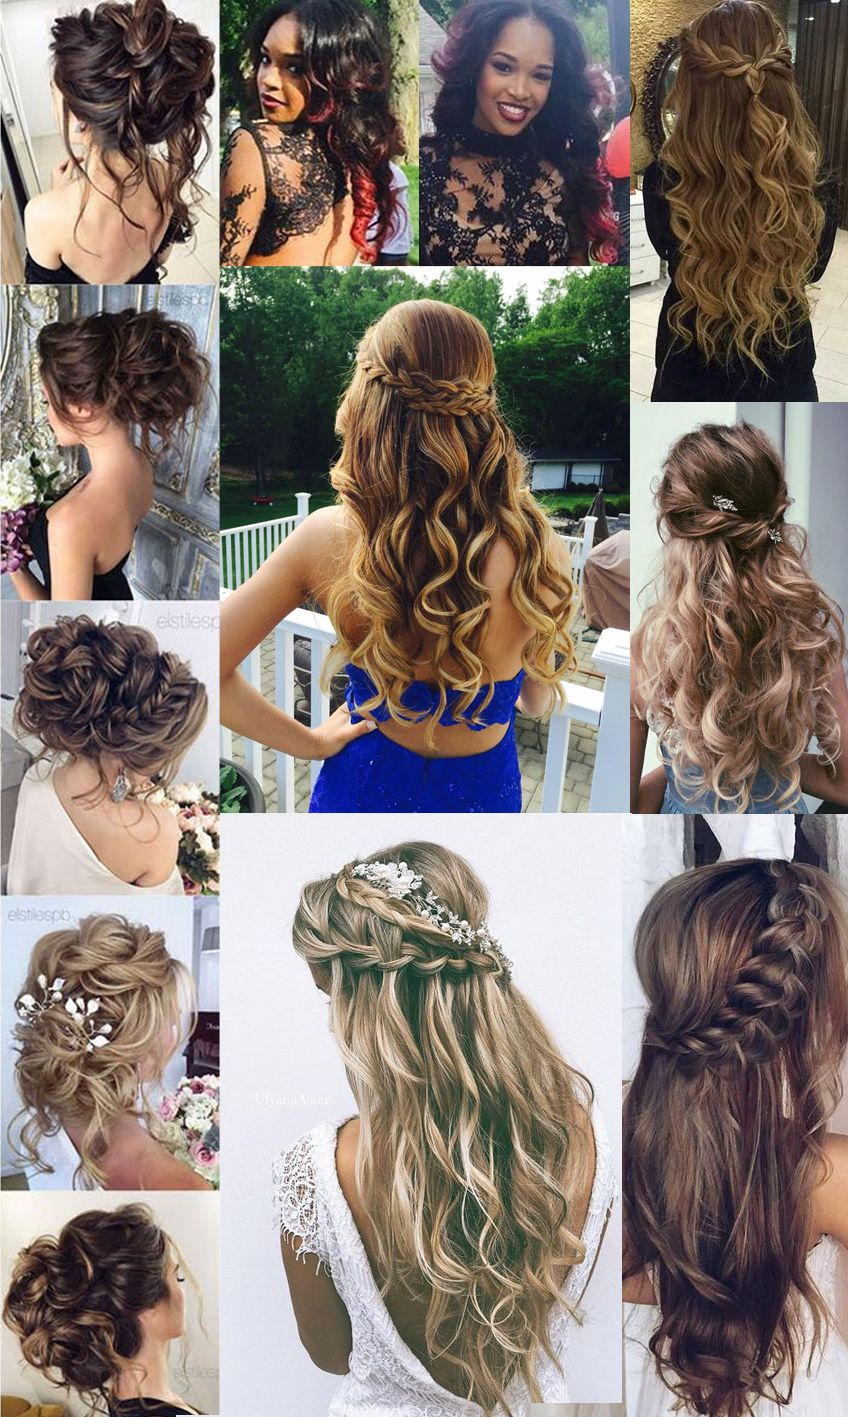 Prom Hair For Party Hairstyle Prom For Long Hair Hairstyle For Prom Black Prom Party Hairstyles For Long Hair Hairstyles For Long Dresses Long Hair Styles